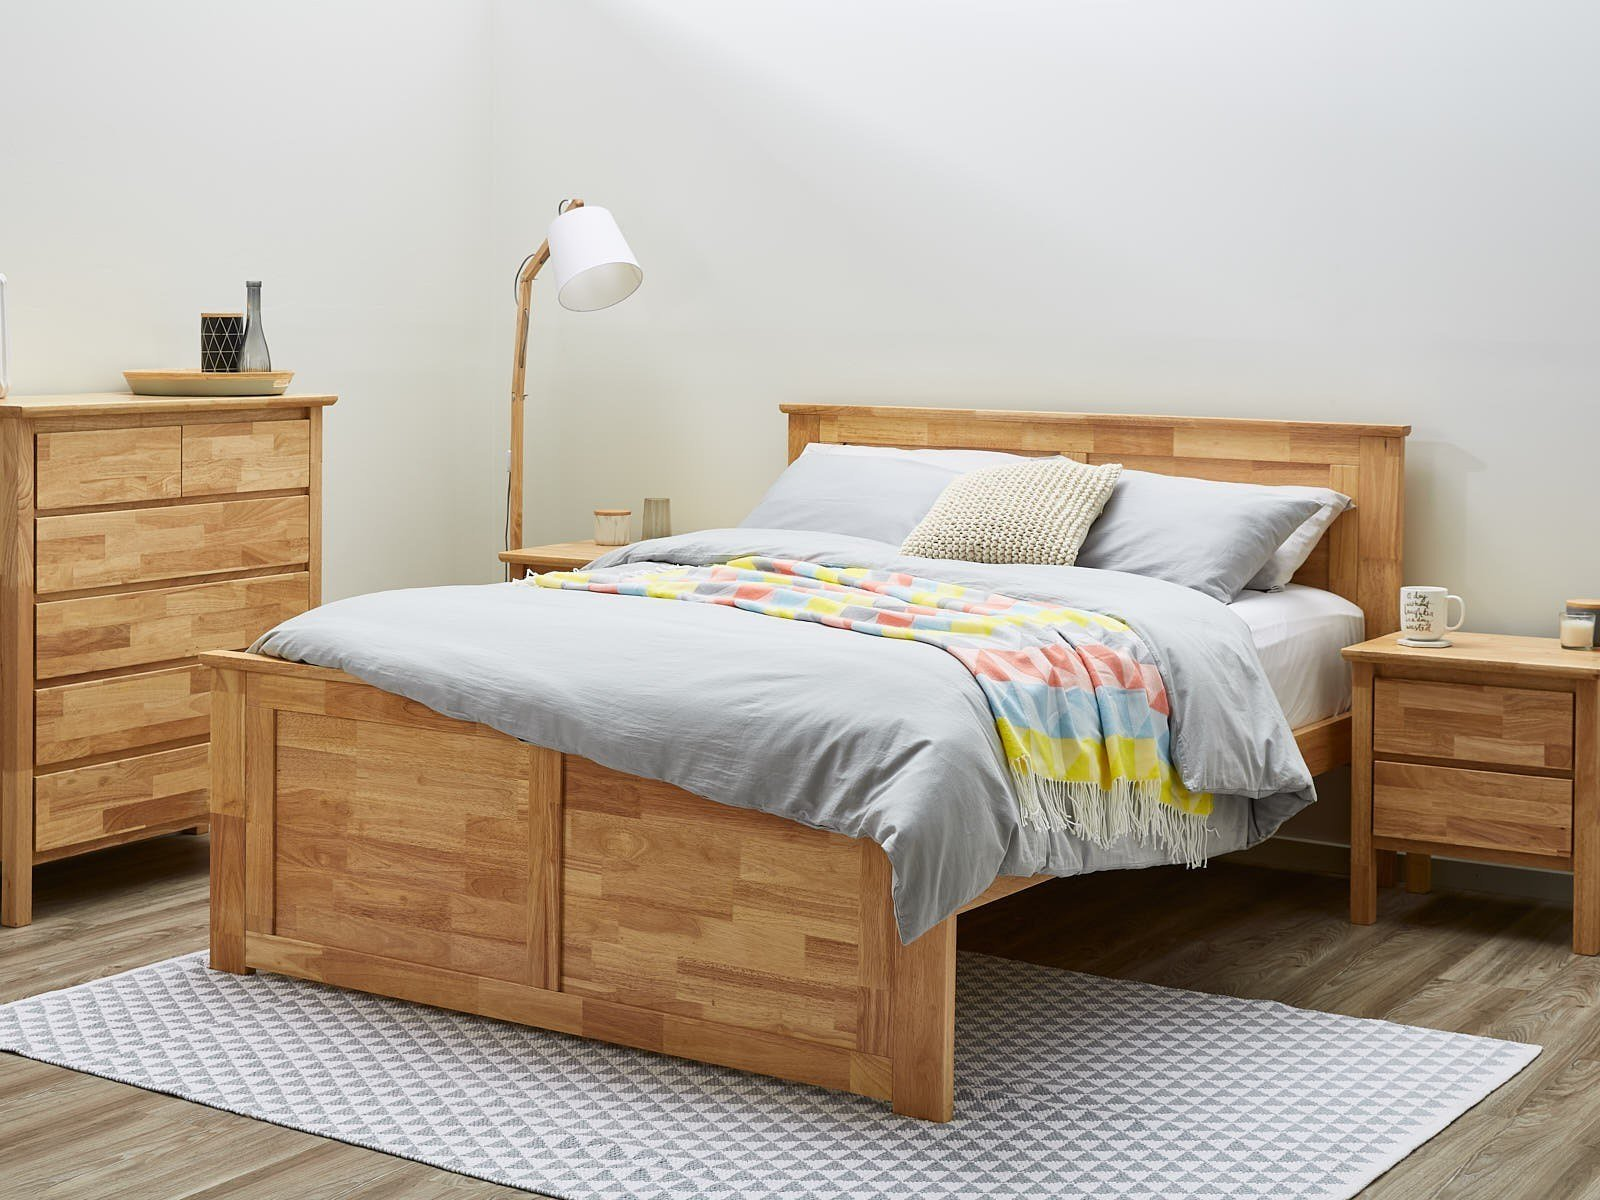 Best King Size Bedroom Suites 50 75 Off Sale – Modern Hardwood With Pictures